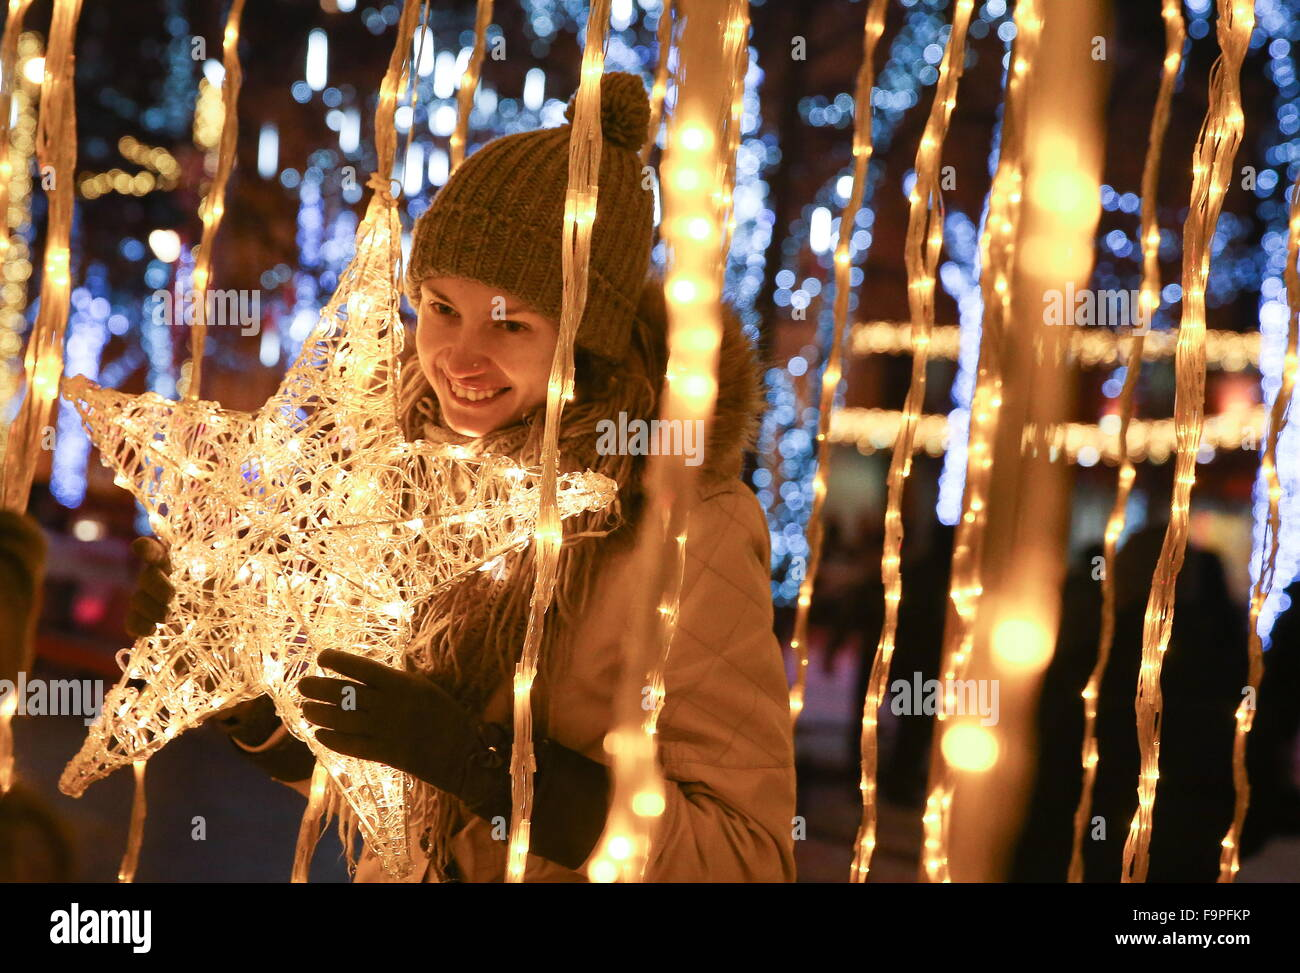 Moscow, Russia. 17th Dec, 2015. A girl in Tverskoy Boulevard decorated for the upcoming holidays as part of the Stock Photo